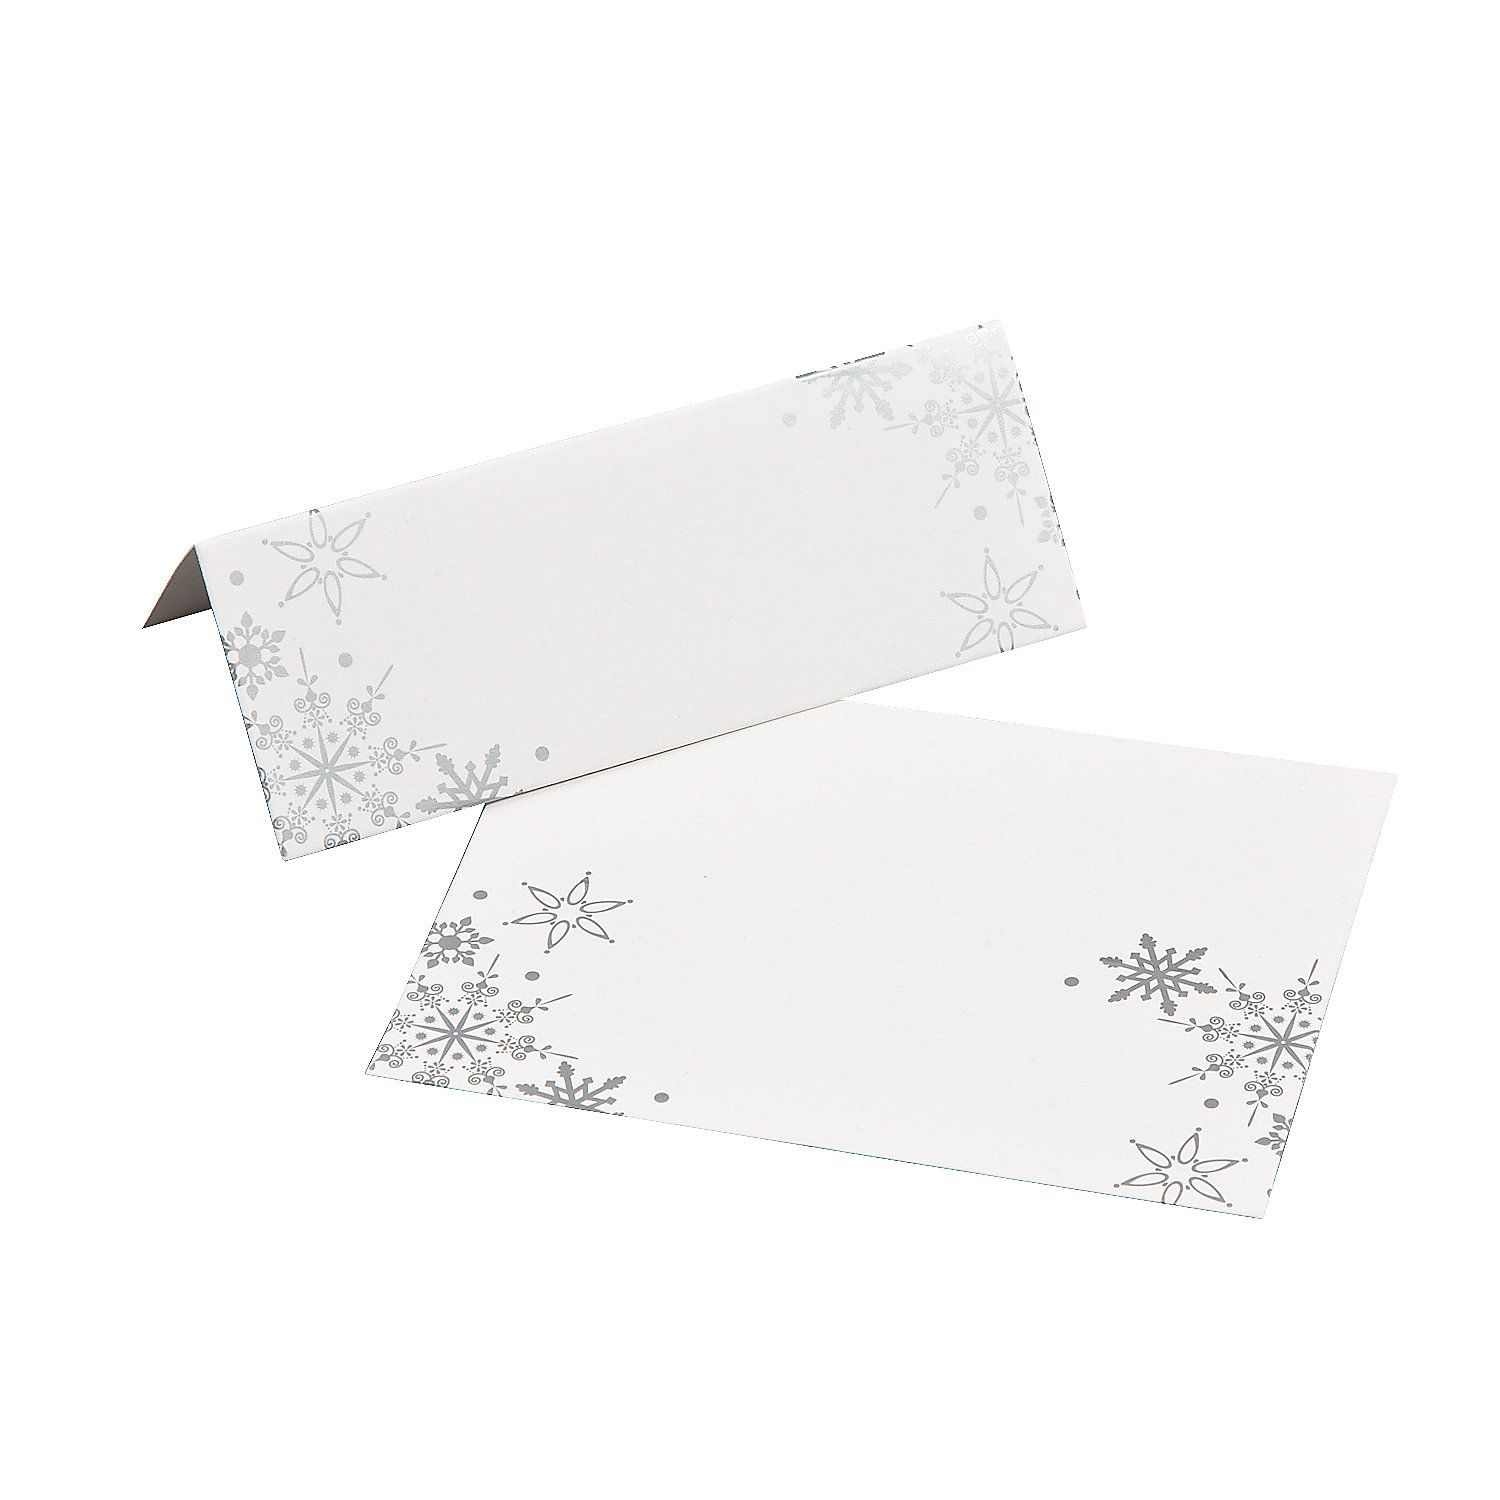 Snowflake Place Cards | Place cards, Cards and Winter onederland